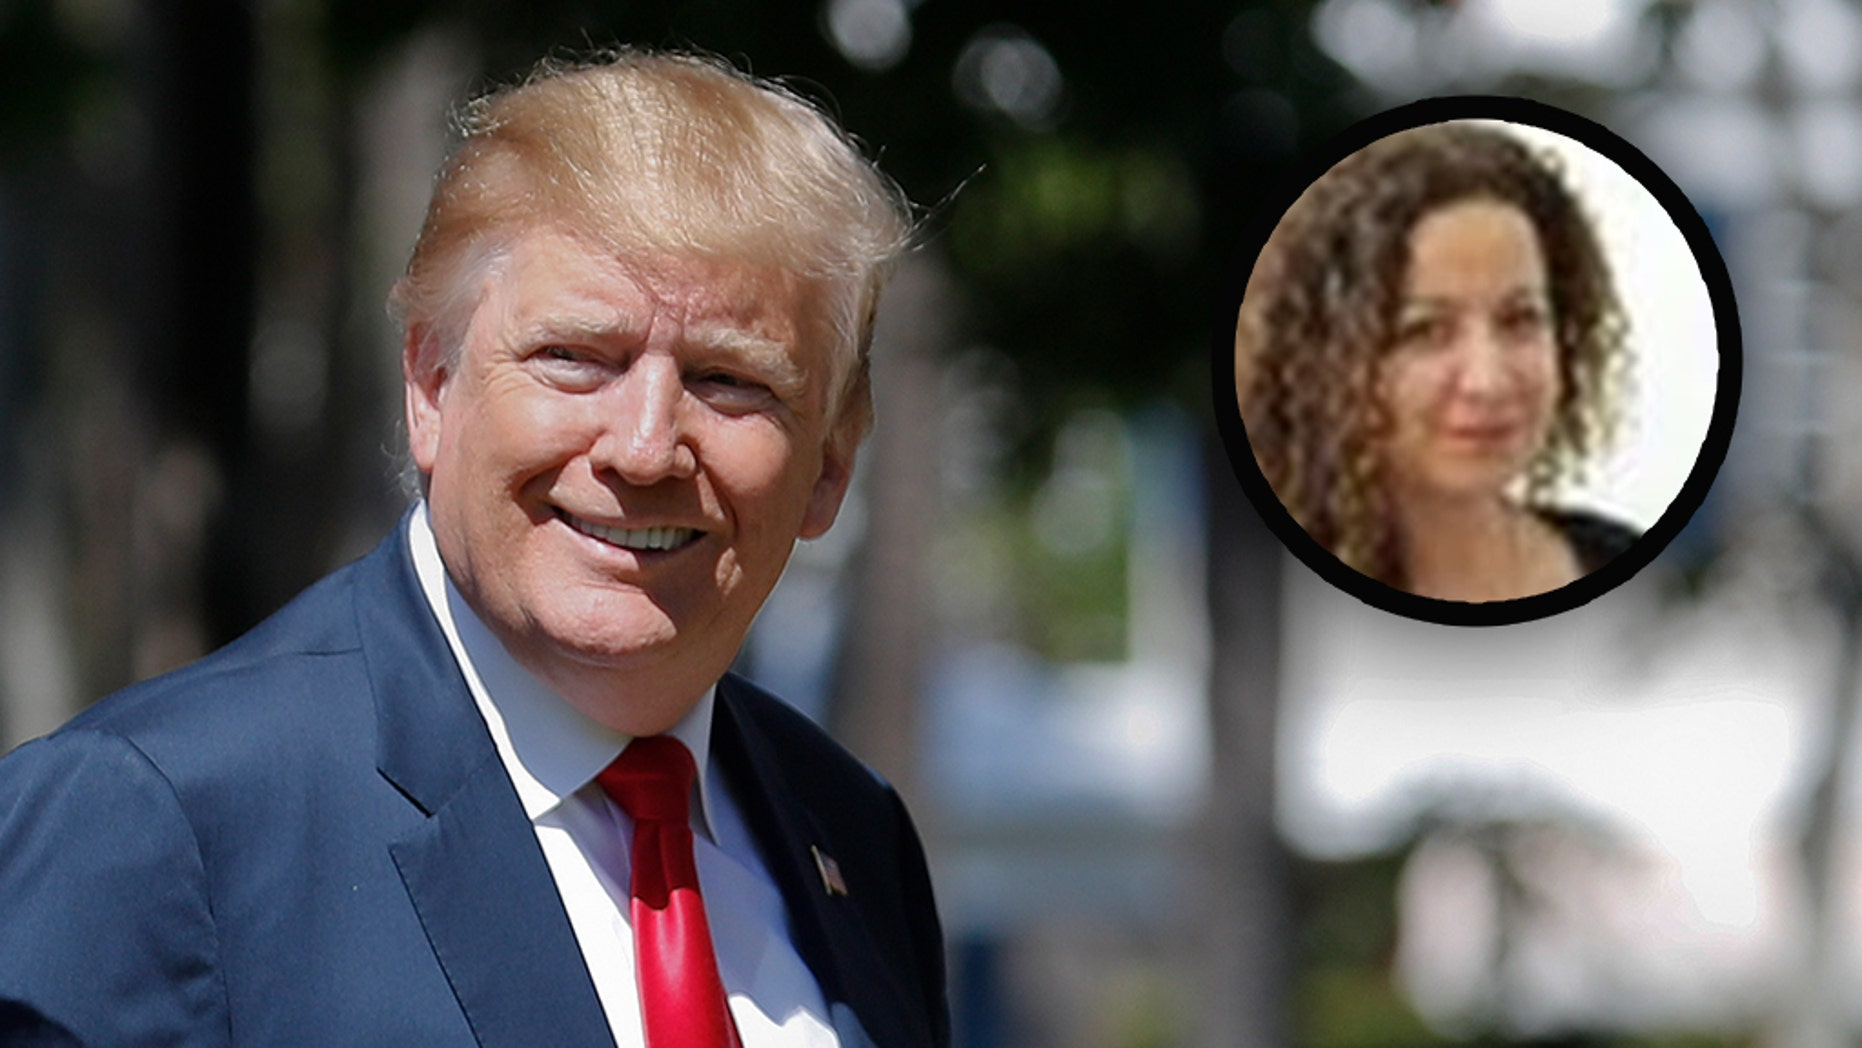 A BuzzFeed News editor, Miriam Elder, faced opposition on Sunday over her tweeting about President Trump and the attacks on Sri Lanka. (AP / BuzzFeed, File)